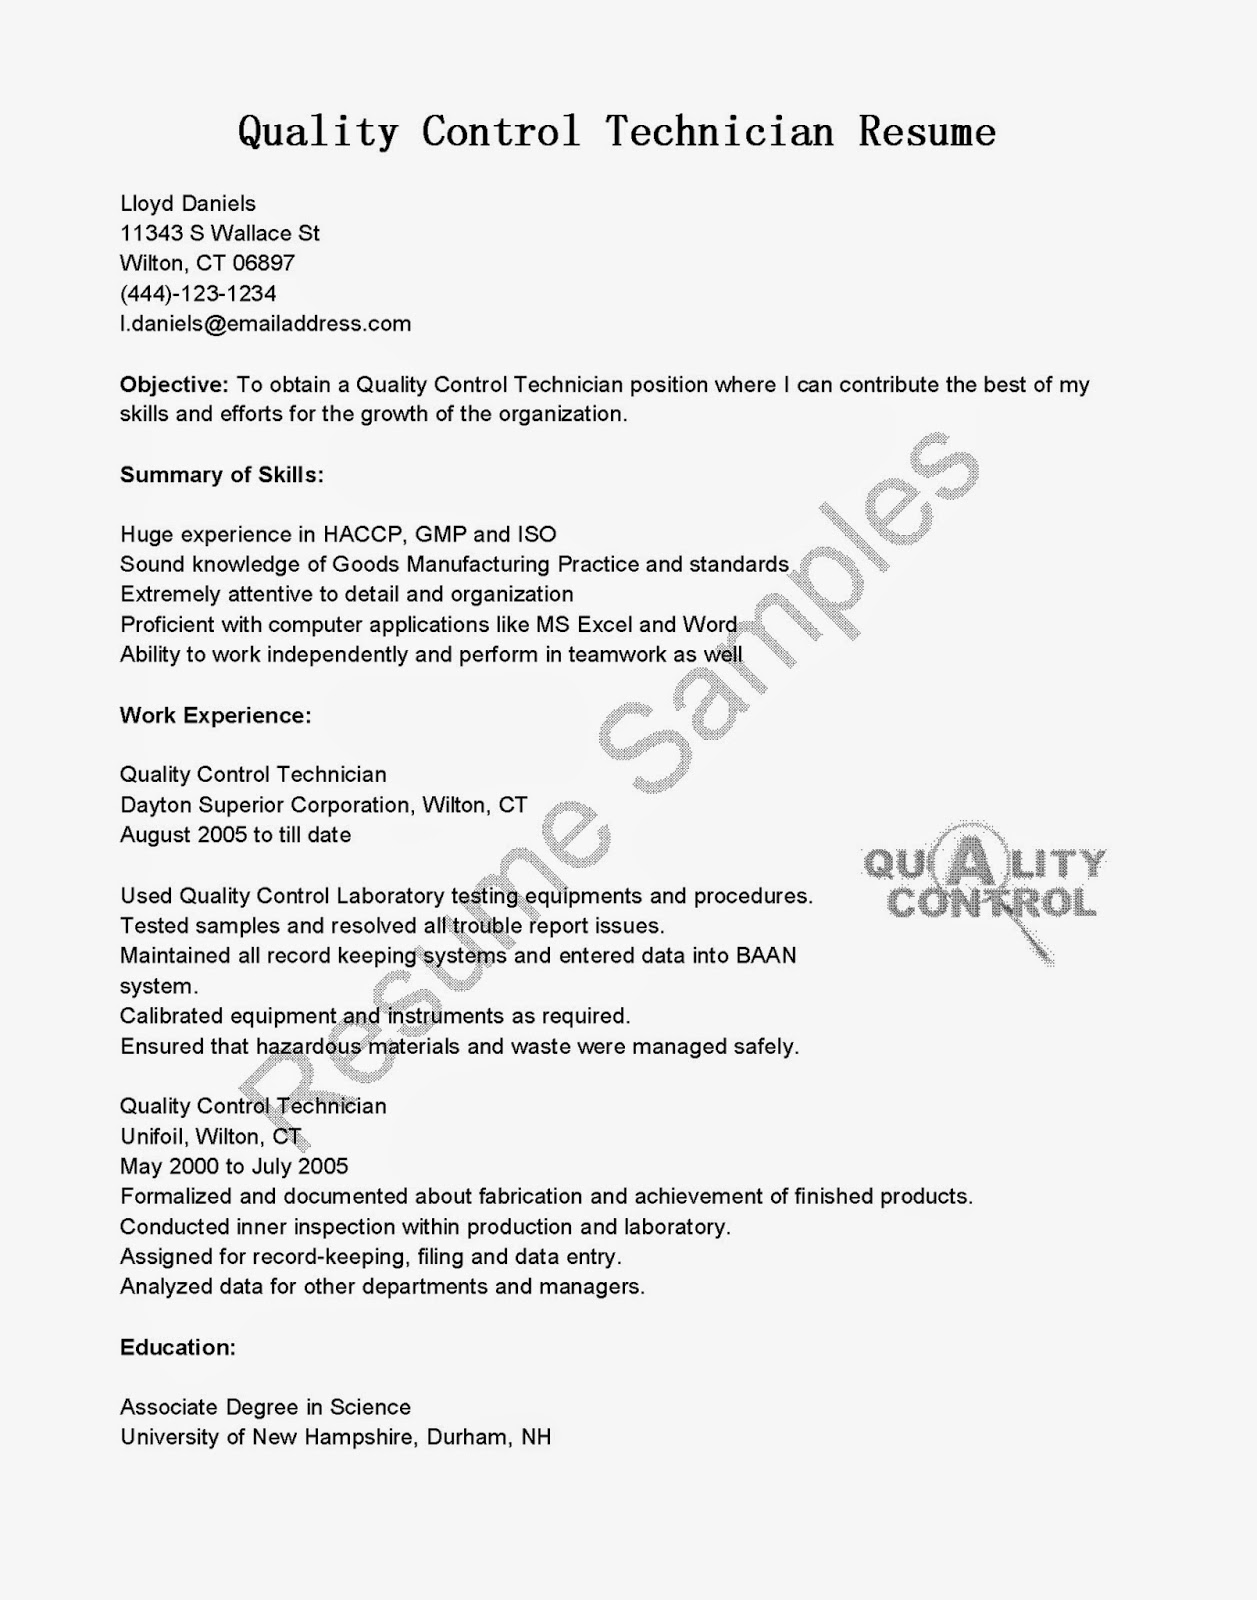 Quality Control Technician Resume 30.04.2017